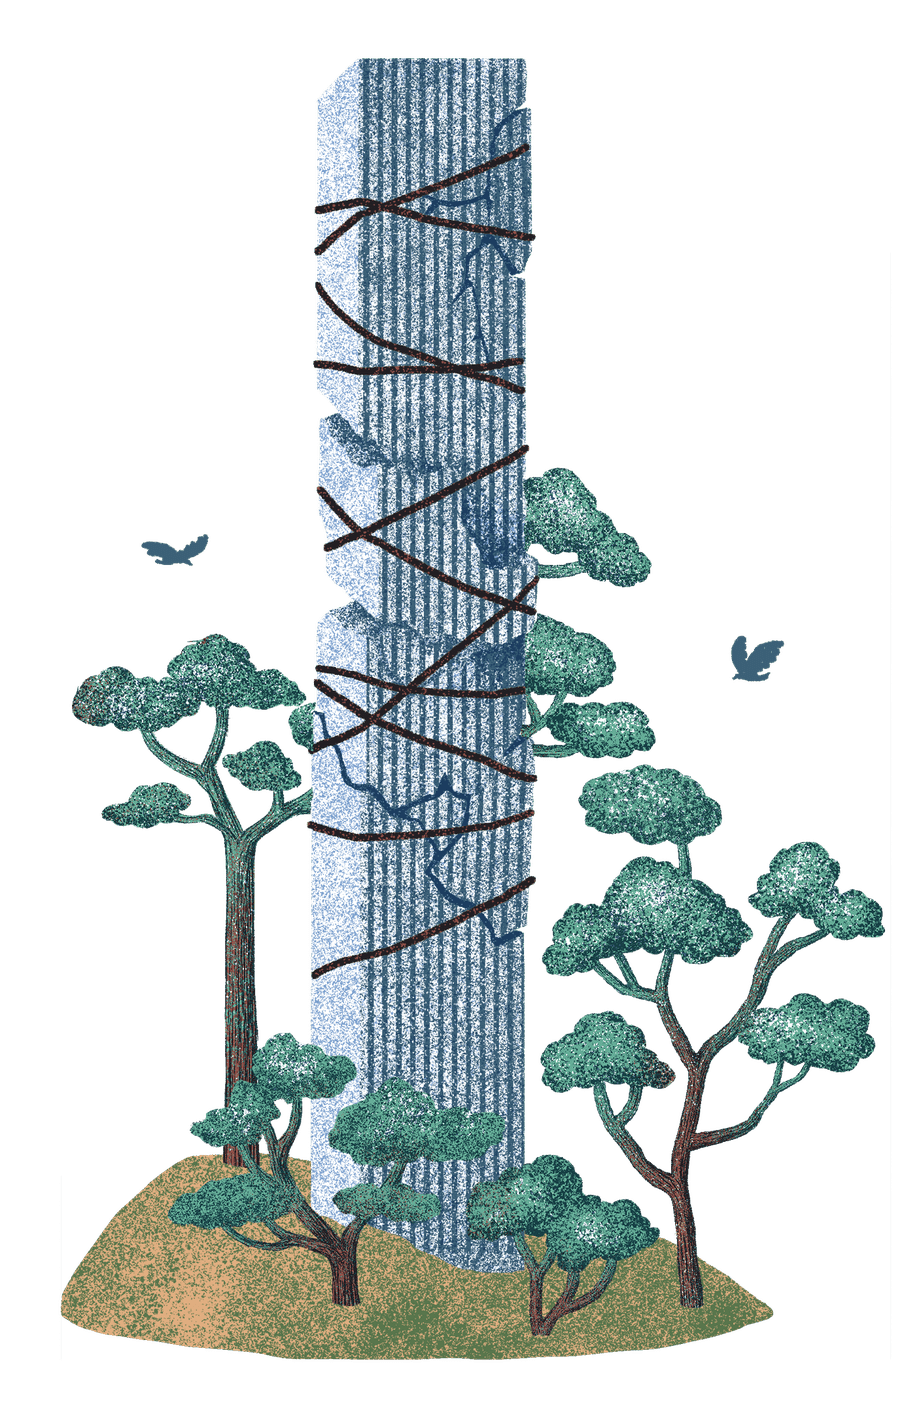 Illustration of a building with cracks in it and rope holding it together, young plants grow around it